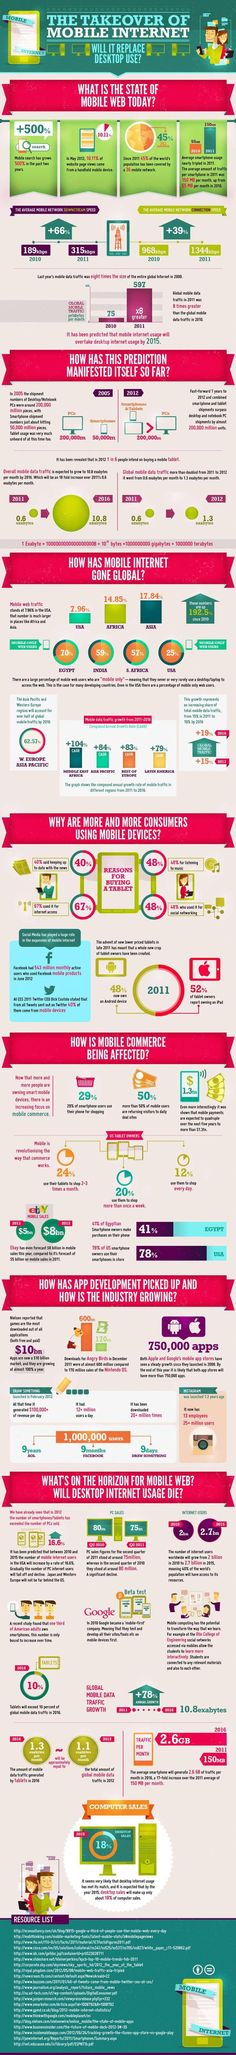 The takeover of mobile internet: will it replace desktop use? #Infographic #Mobile #Internet